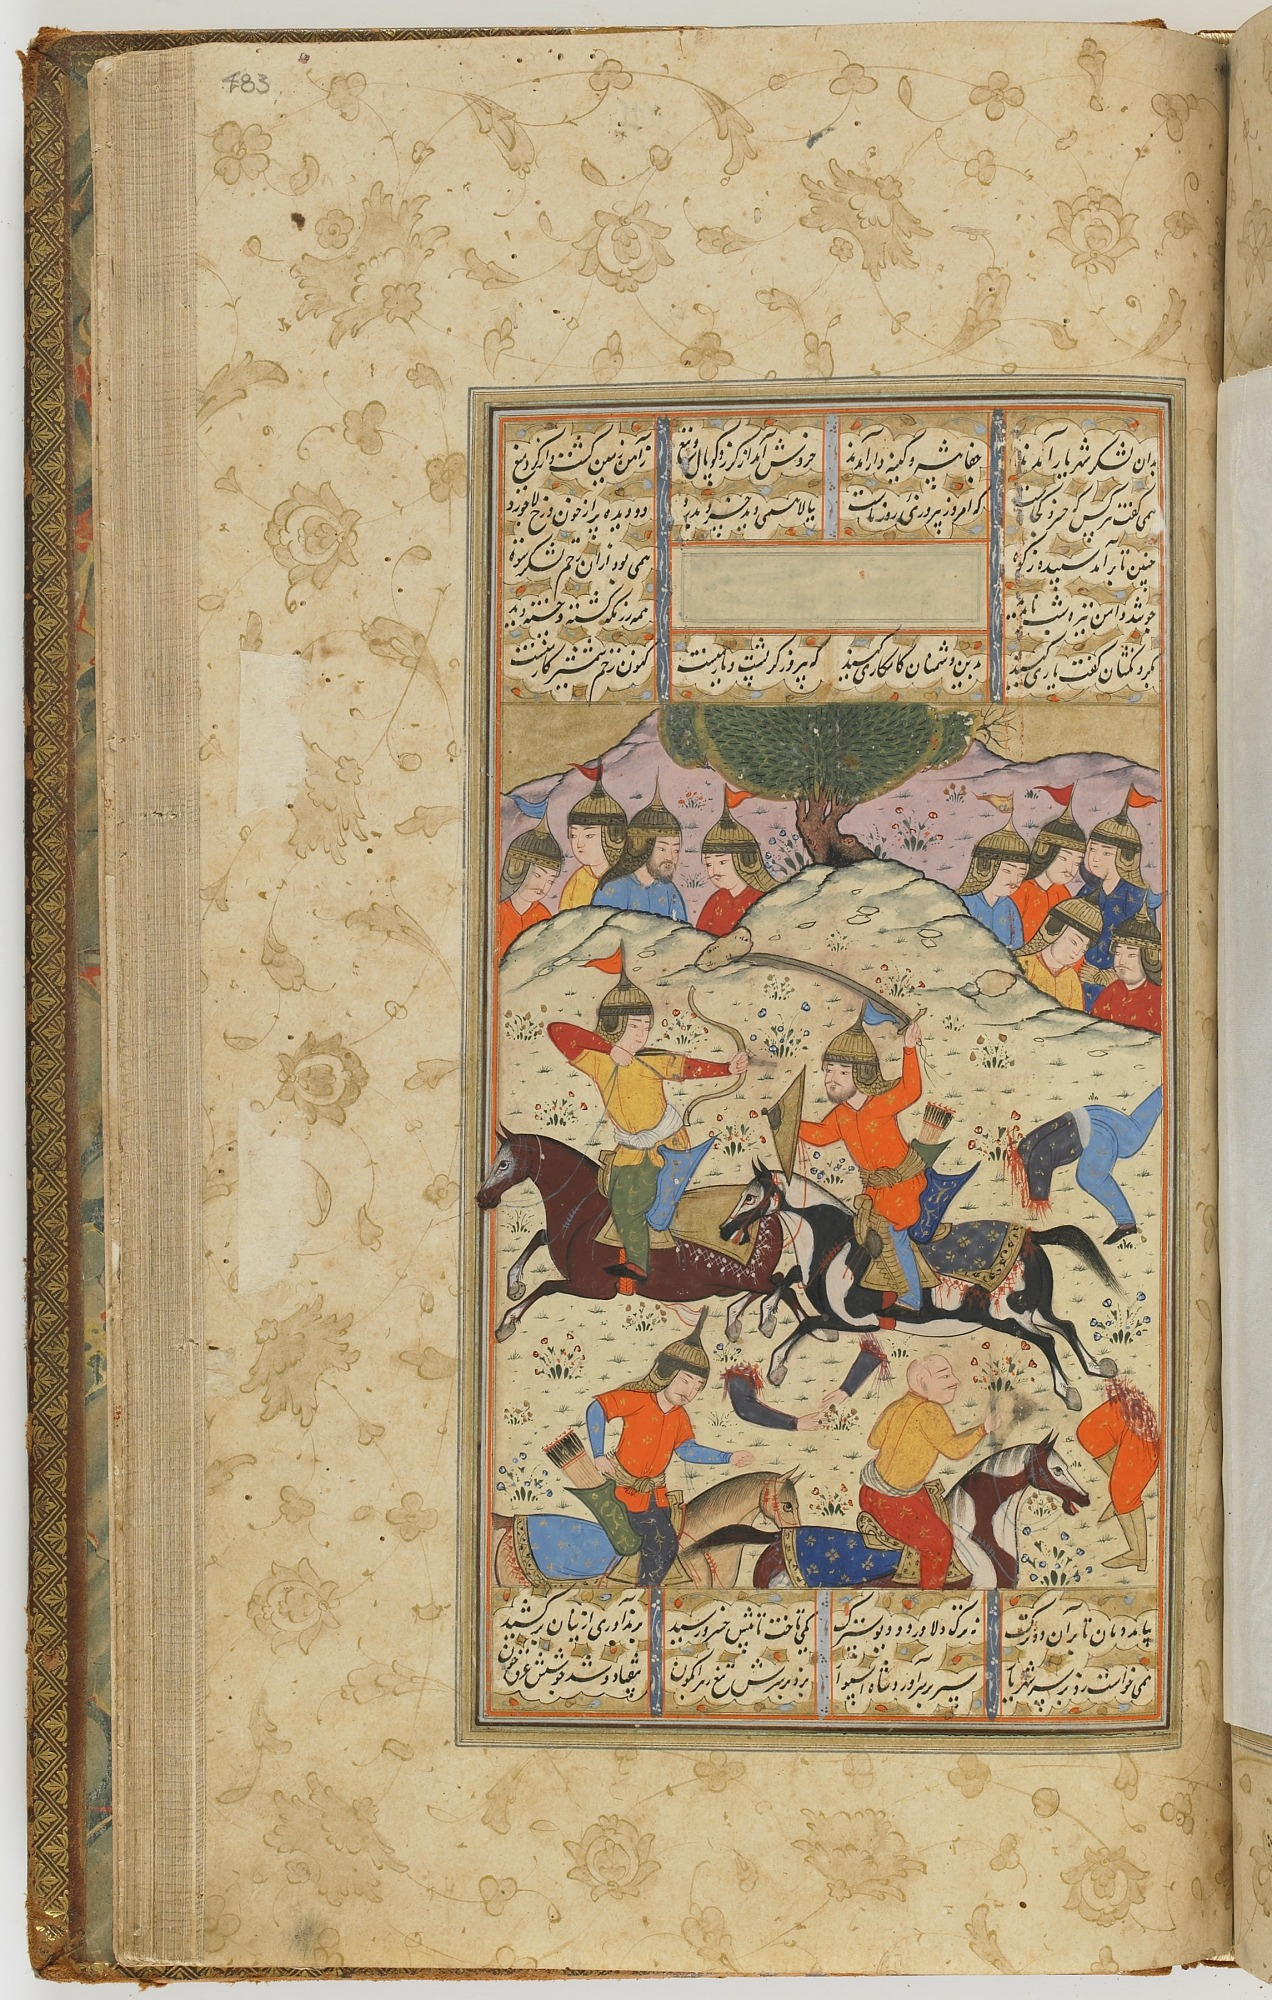 folio 483 recto: The Shahnama (Book of kings) by Firdausi (d. 1020)